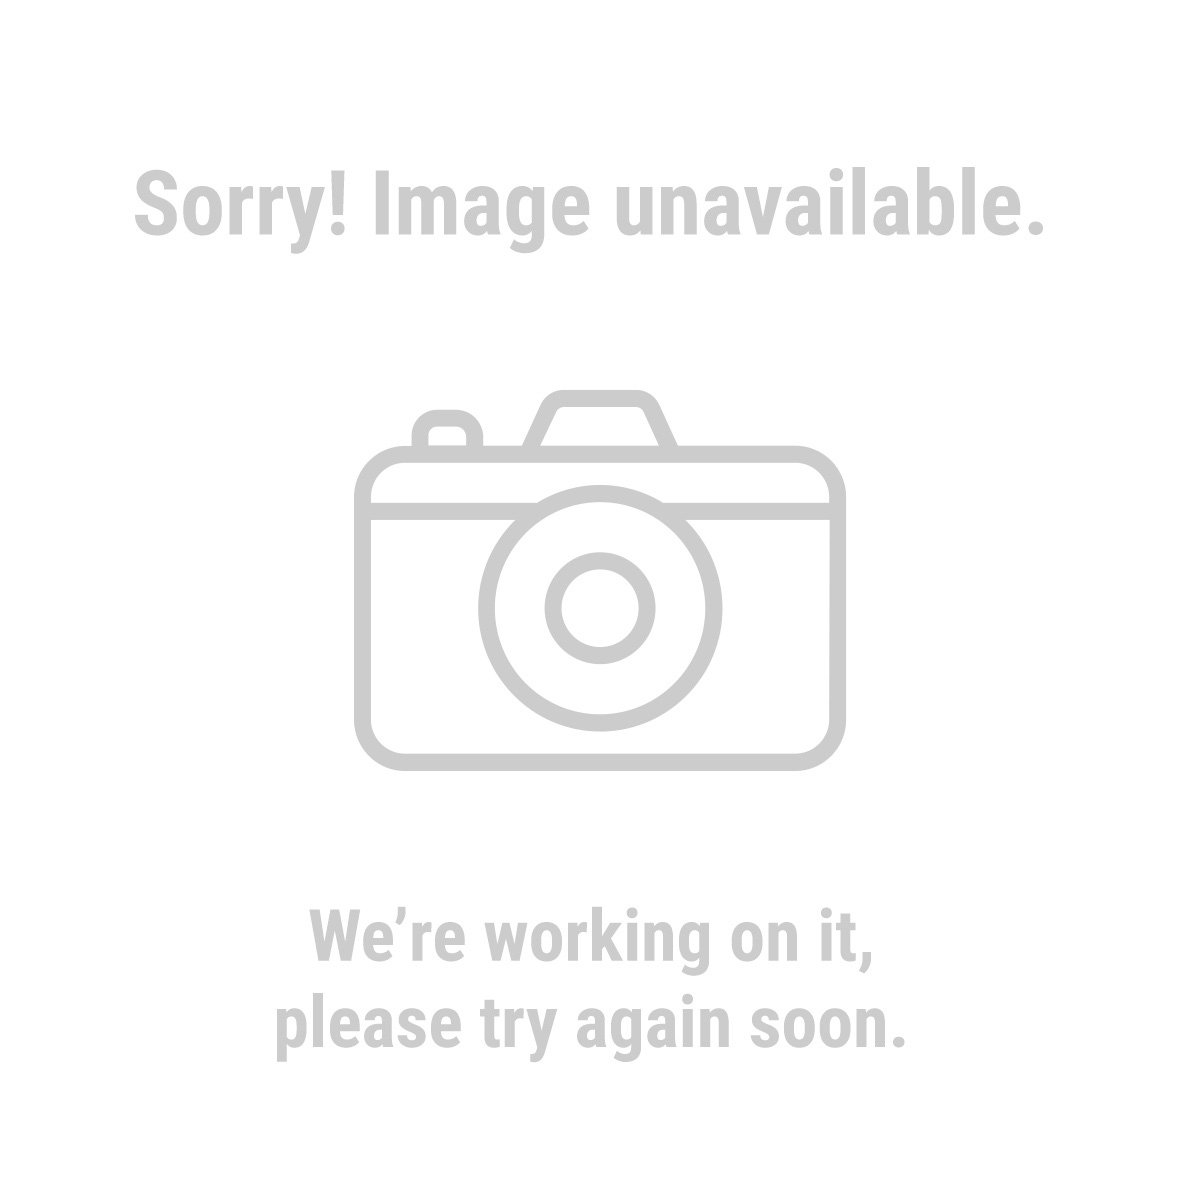 "39991 10 Piece 1"" to 4"" Foam Brush Set"